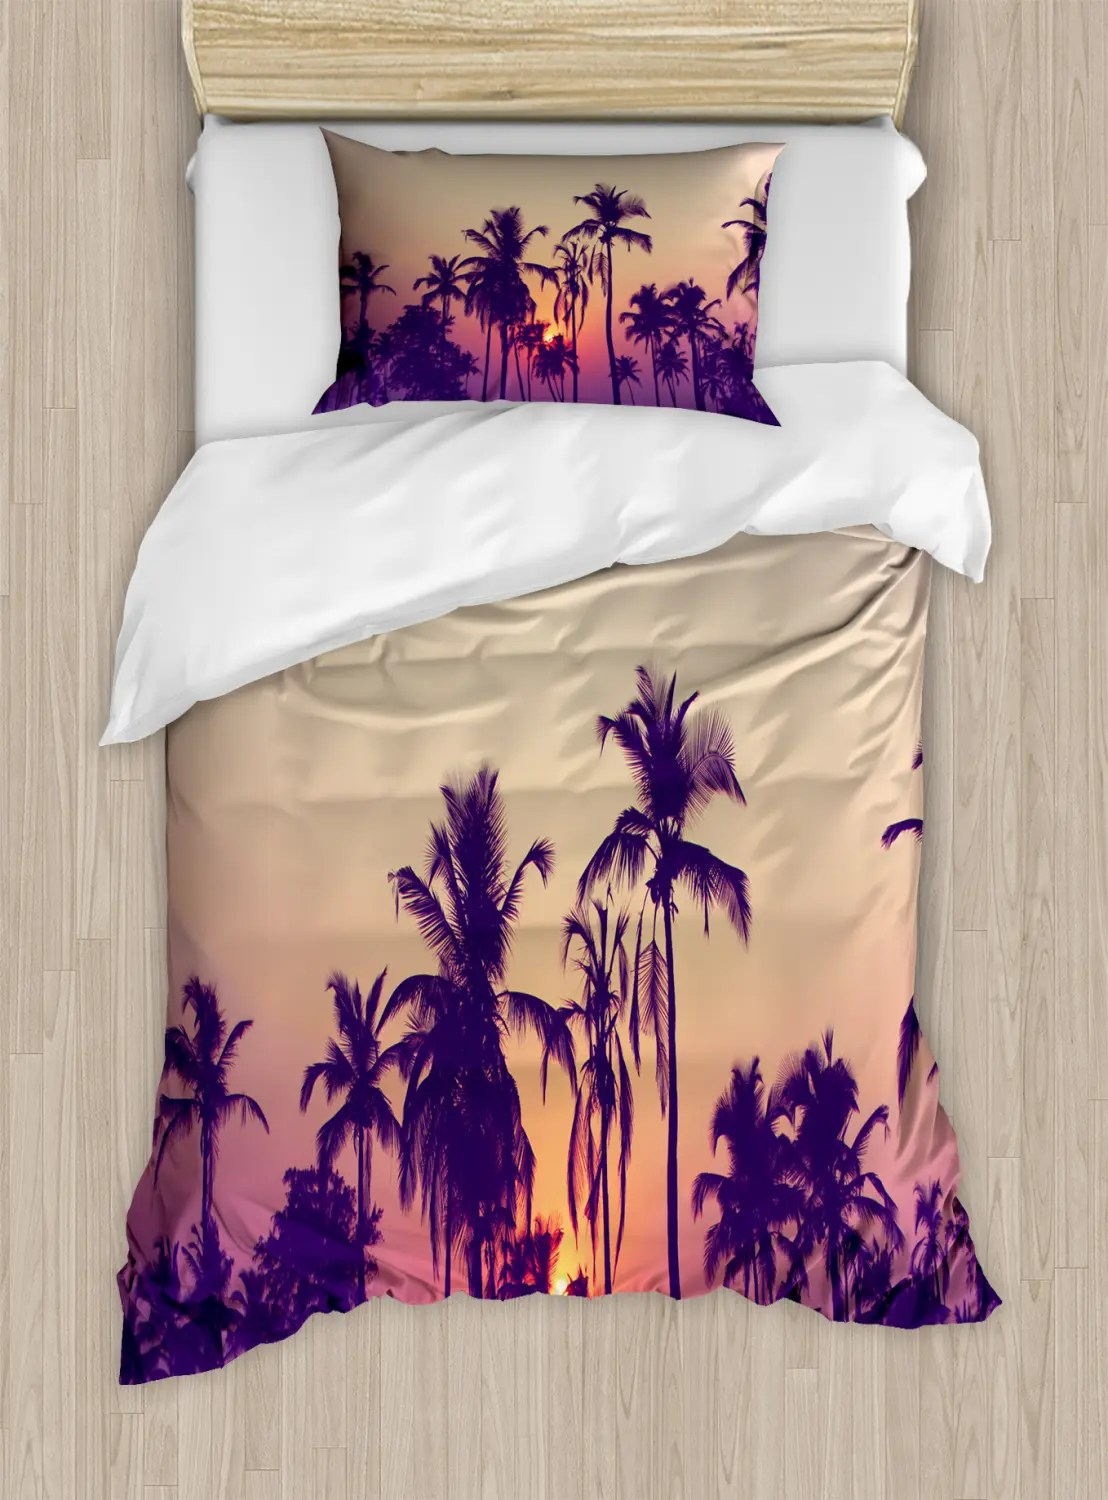 Sonnenuntergang Bettwäsche Set Tropical Sunset Palmen Ebay